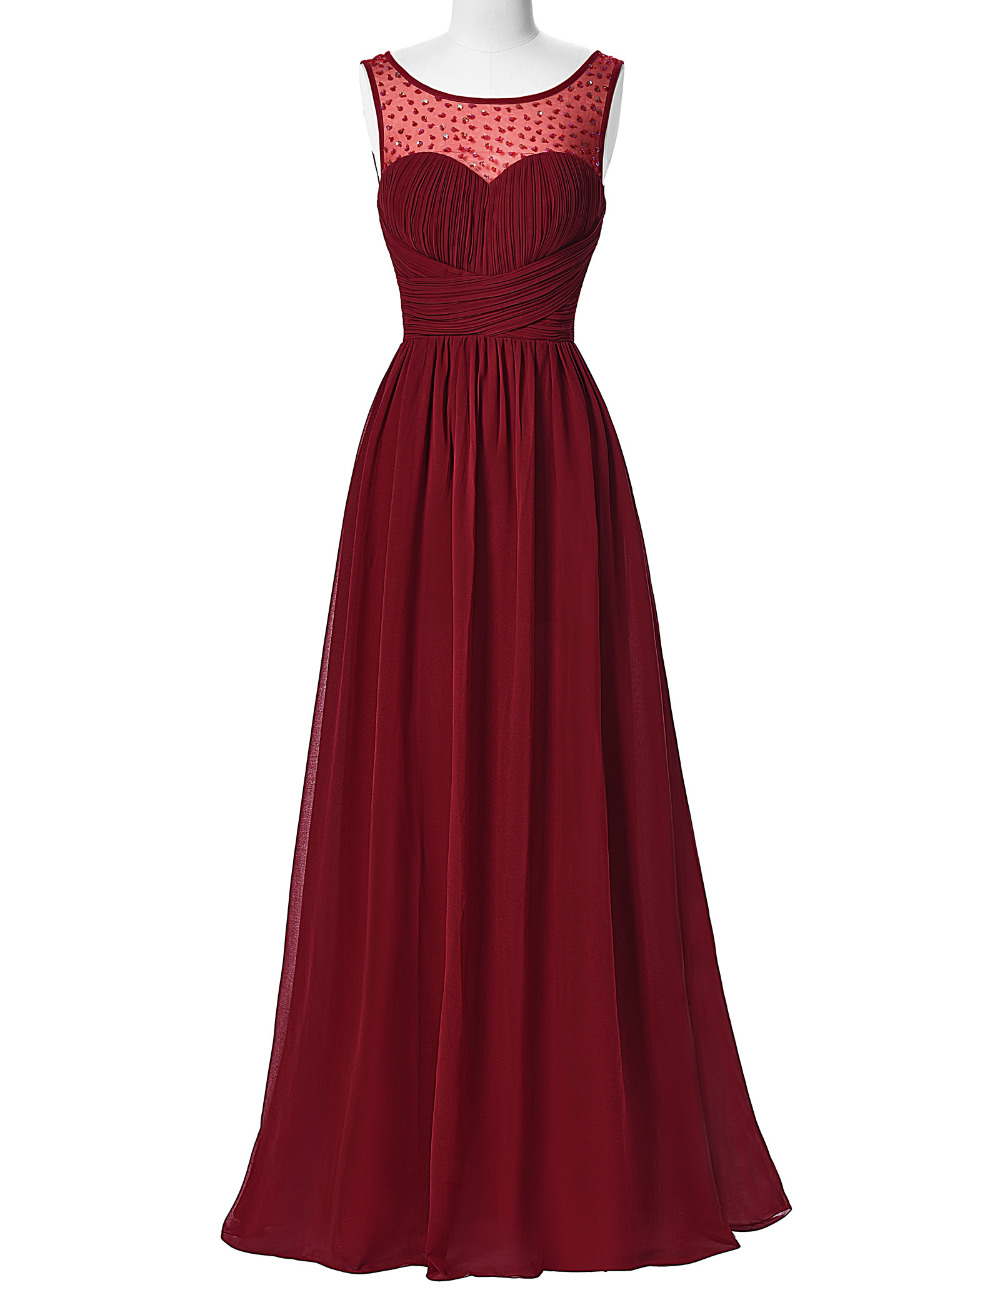 Long Burgundy Prom Dresses 2016 Sleeveless V-Back Chiffon Prom Dress,Handmade Prom Dress,Cheap Prom Dress,Formal Evening Gown,Prom Gown 2016